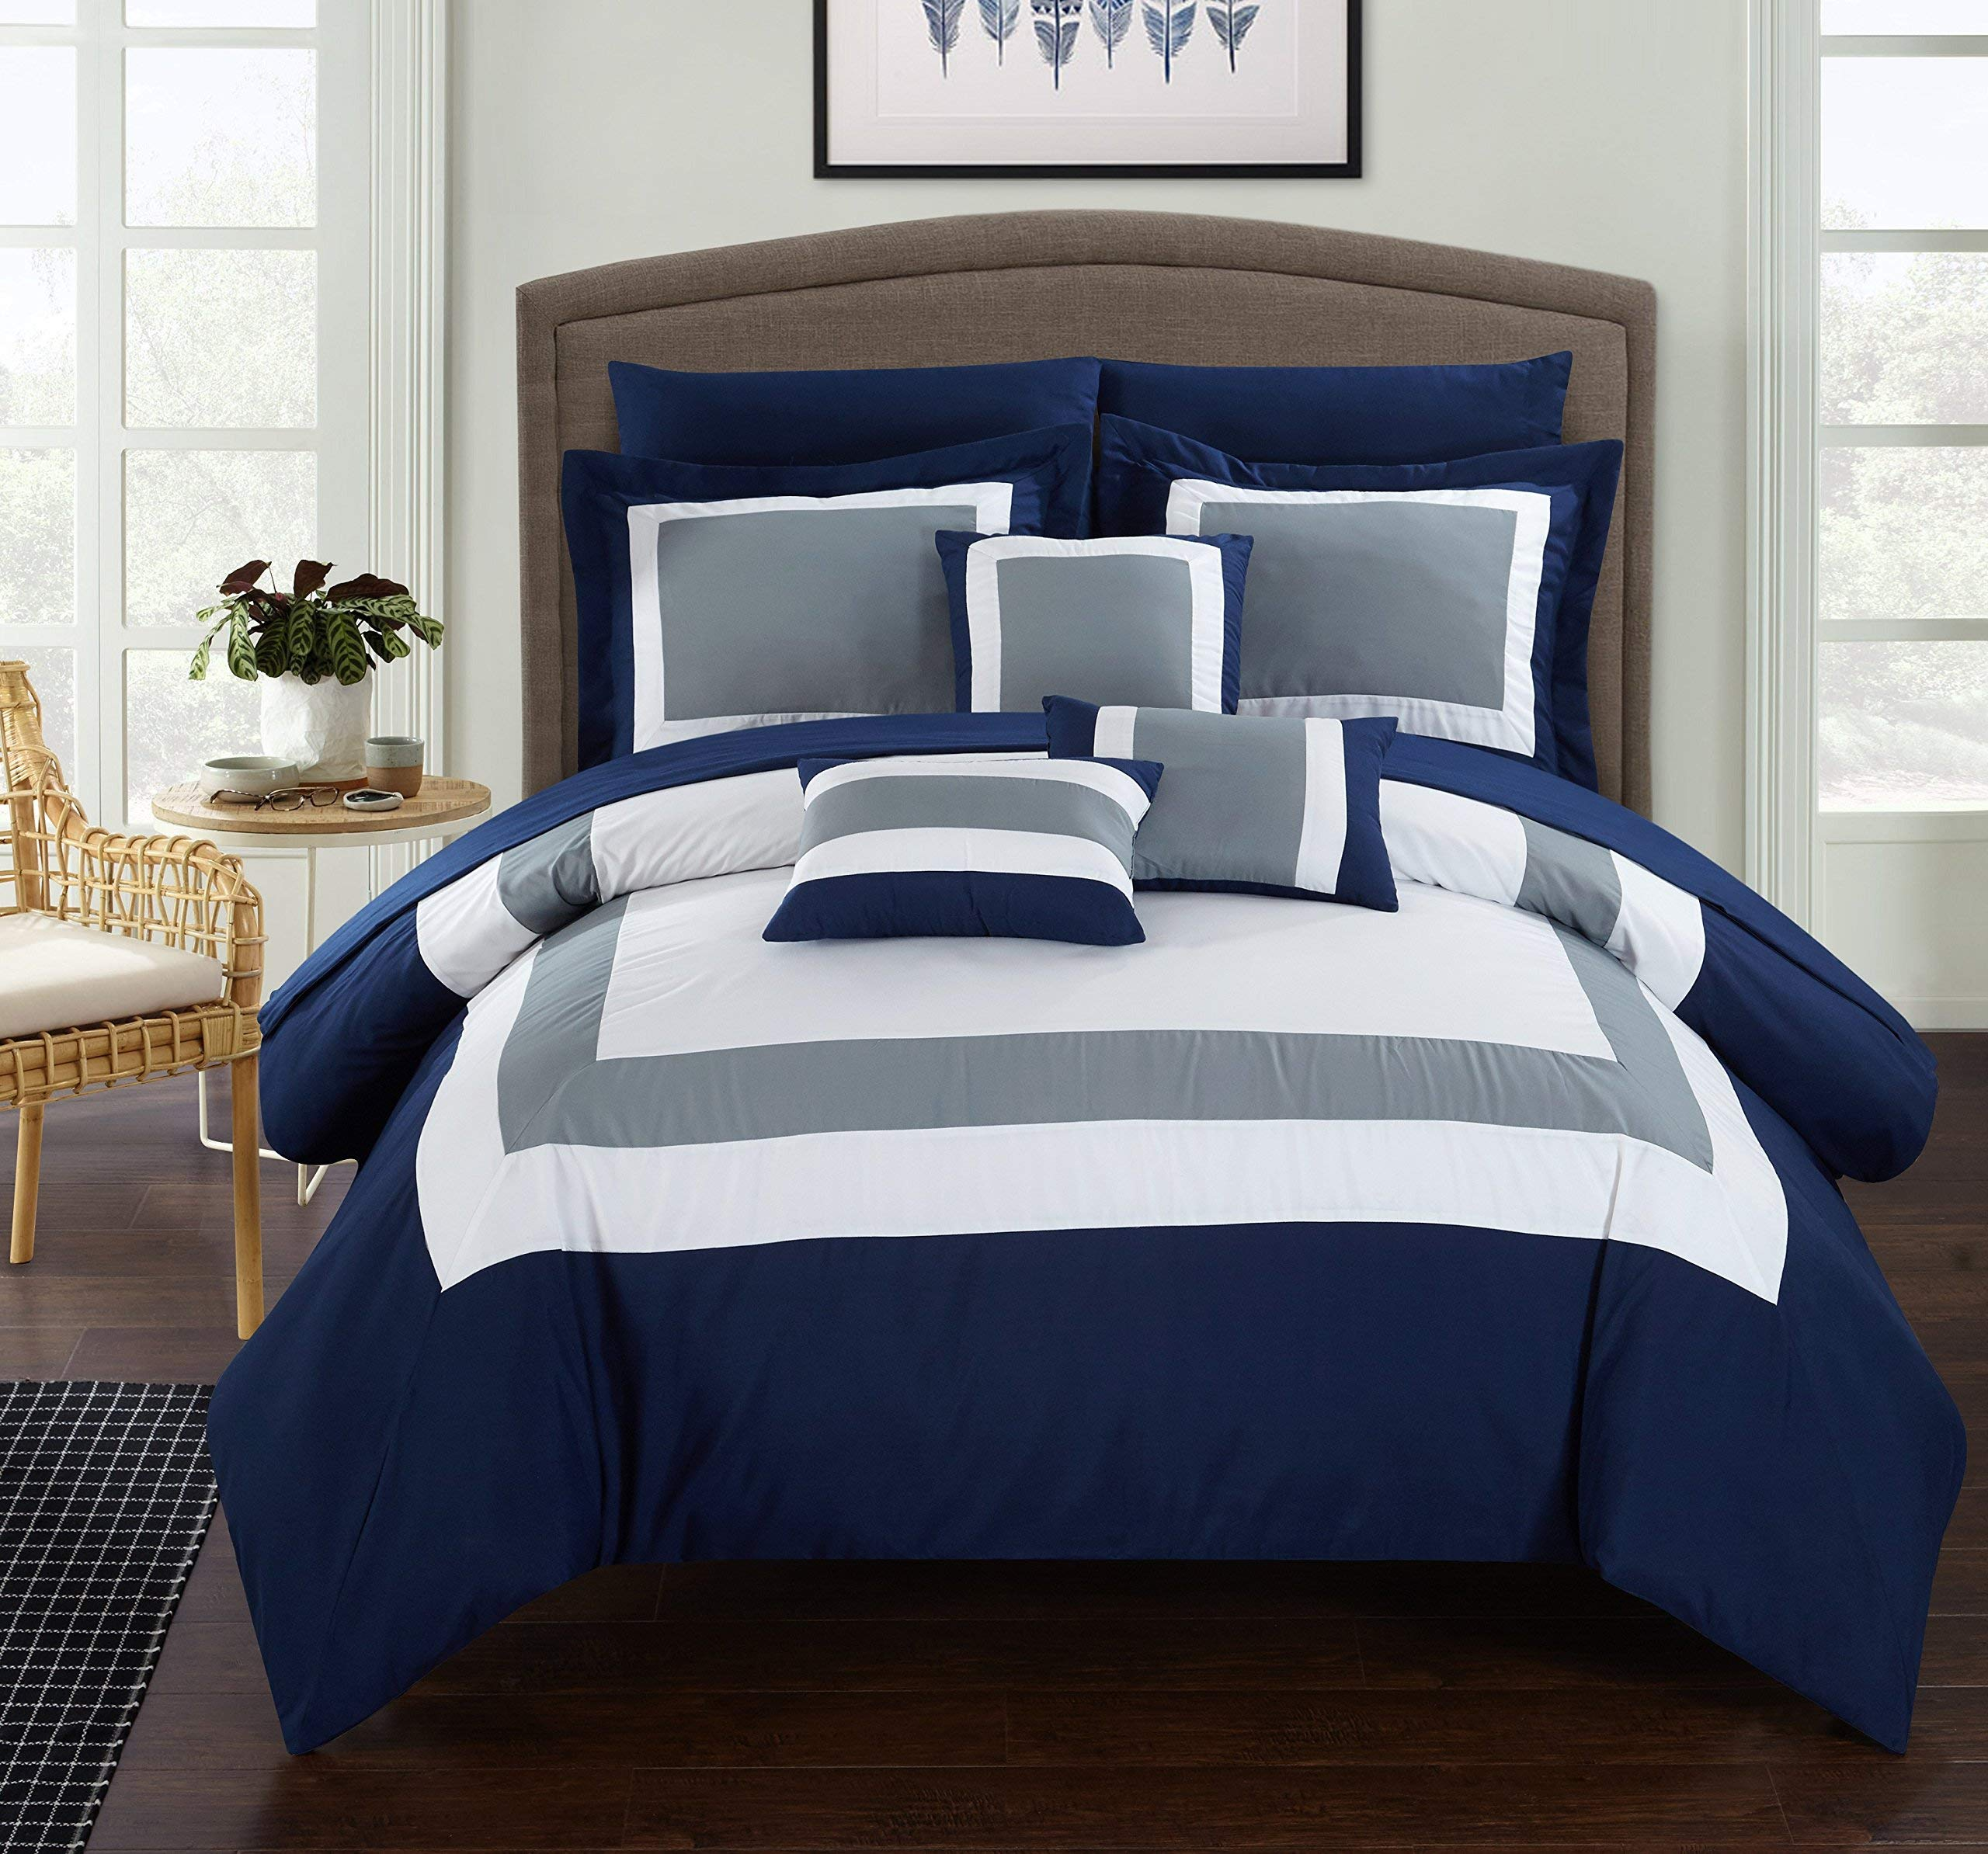 Chic Home Duke 10 Piece Comforter Set Complete Bed in a Bag Pieced Color Block Patterned Bedding with Sheet Set And Decorative Pillows Shams Included, King Navy